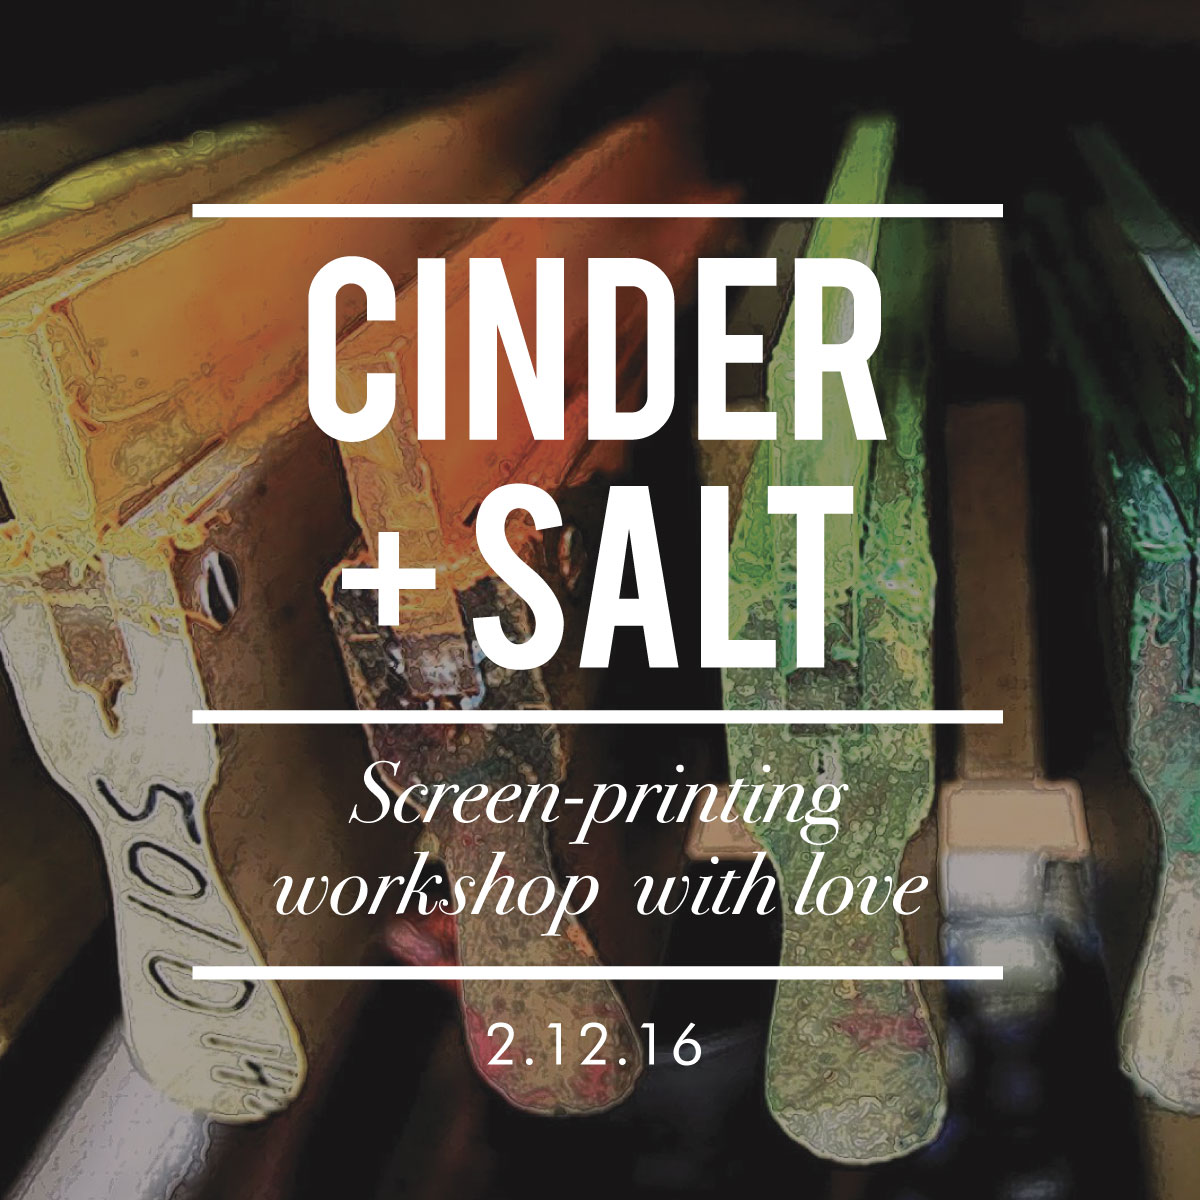 http://hartfordprints.com/shop/screen-printing-workshop-cinder-salt-february-12-2016/